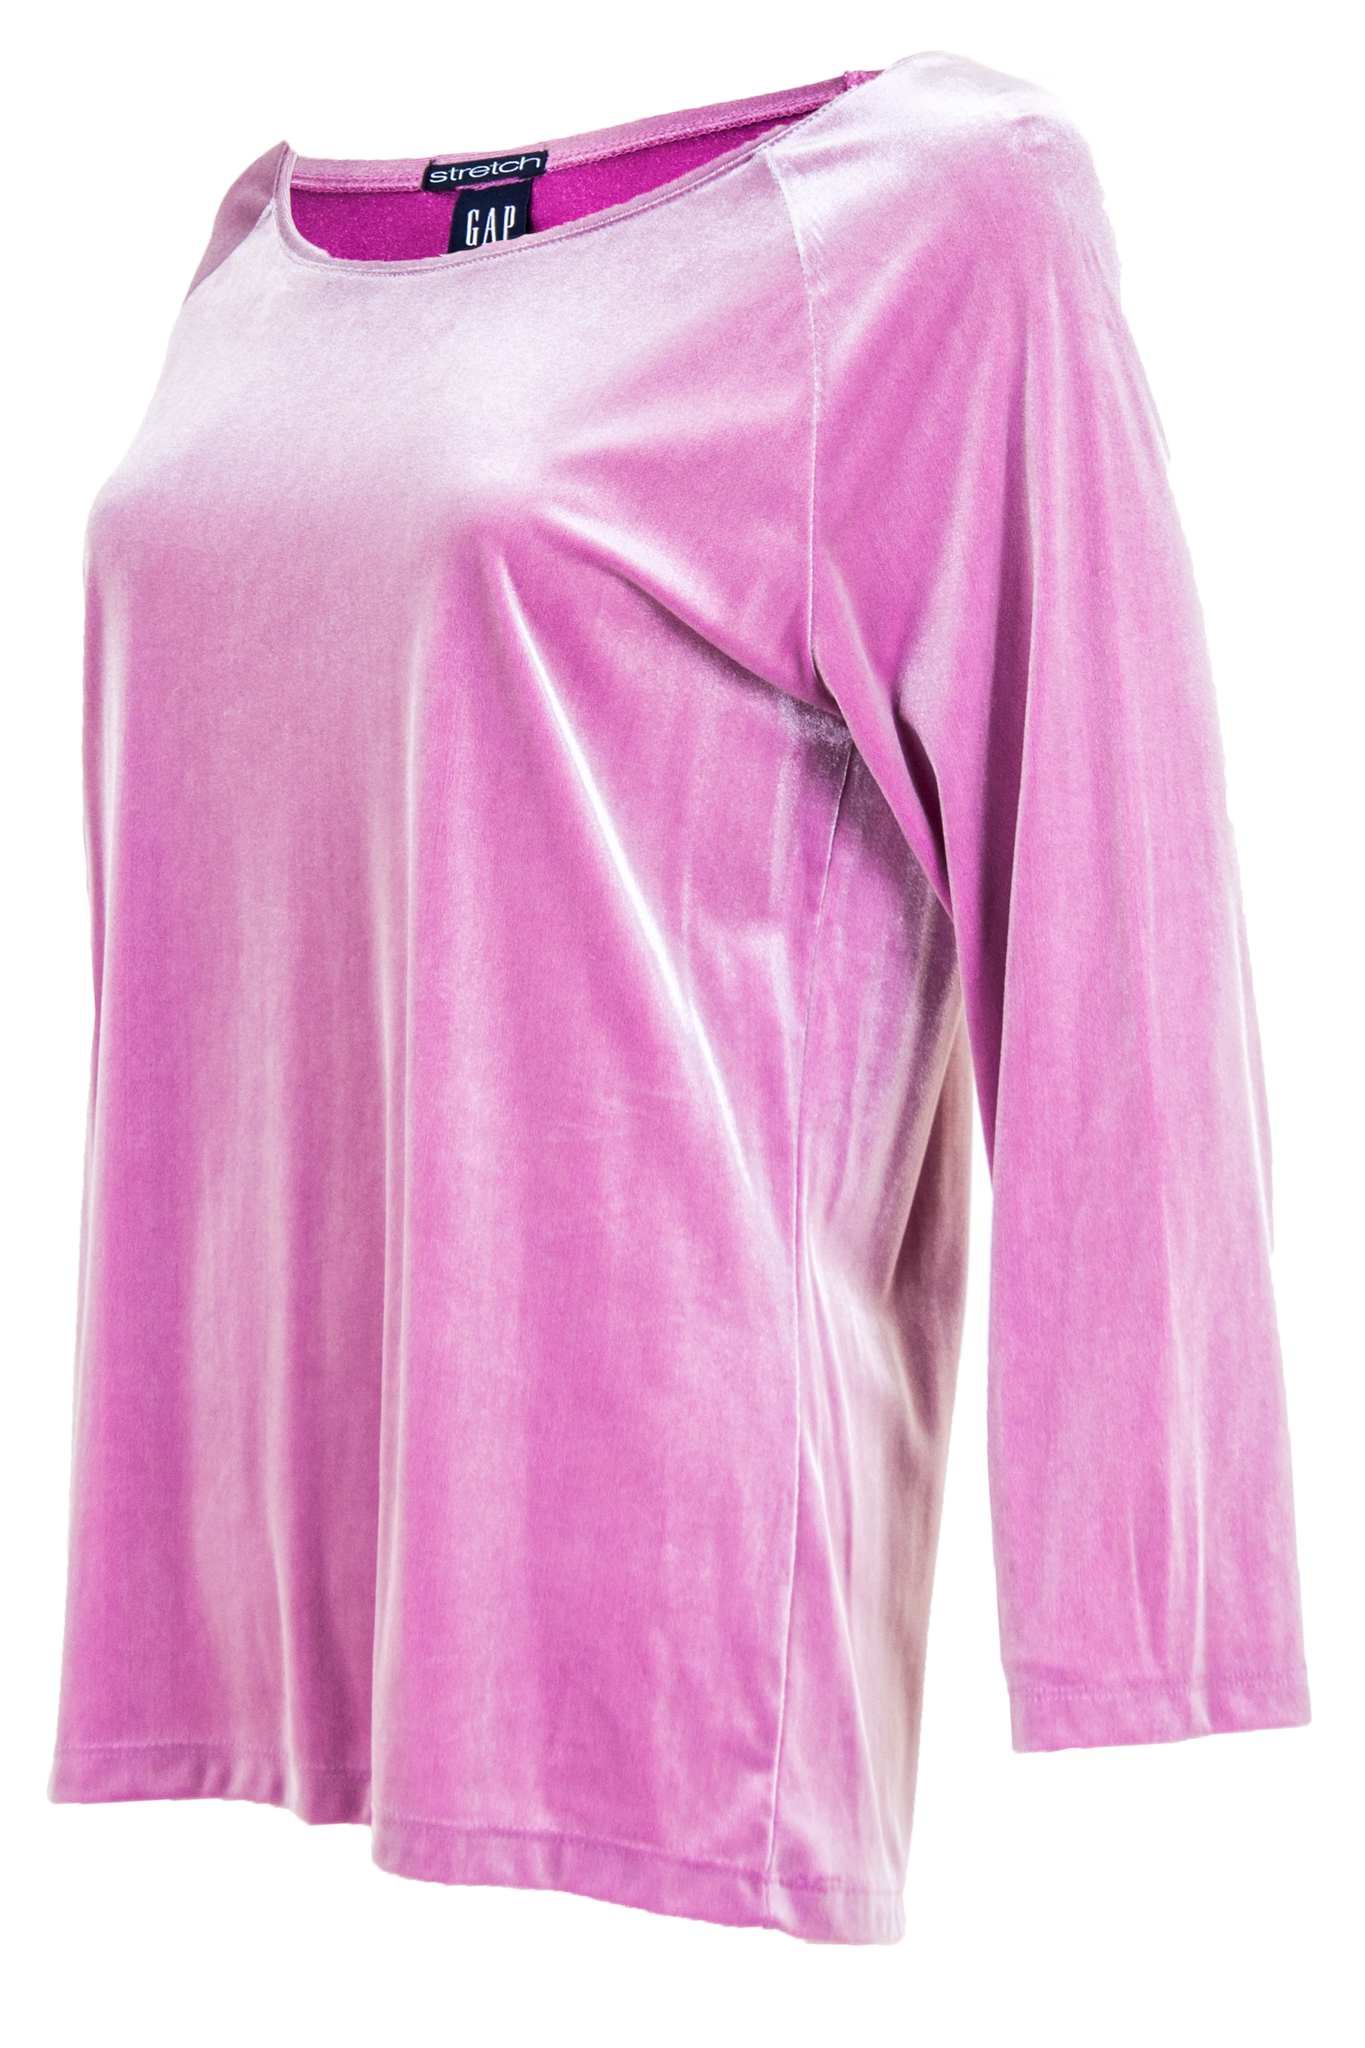 rose quartz velvet top with long sleeves and scoopneck